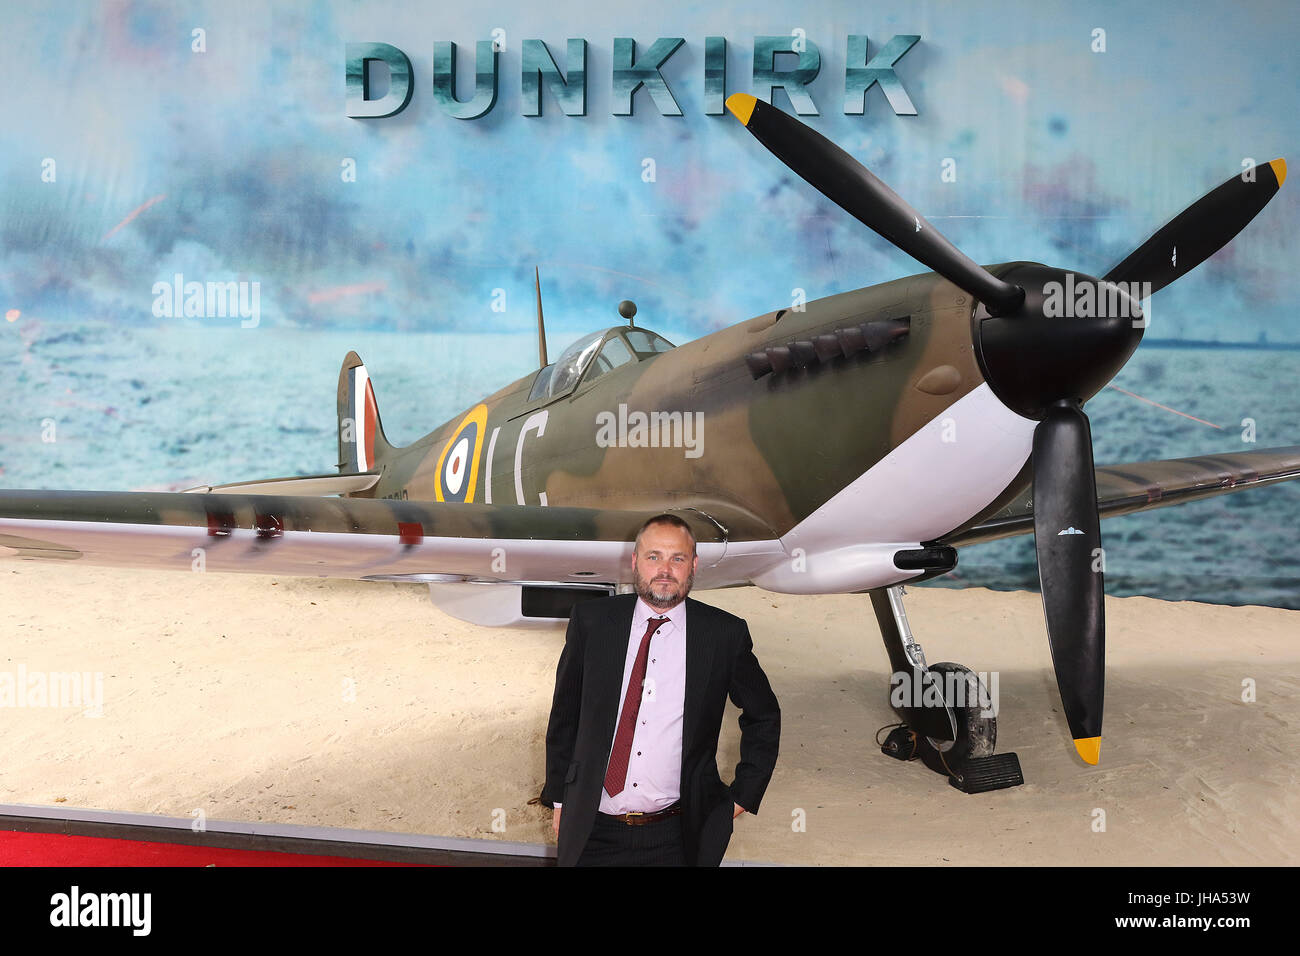 London, UK. 13th July, 2017. Al Murray, Dunkirk - World film premiere, Leicester Square Gardens, London UK, 13 July - Stock Image